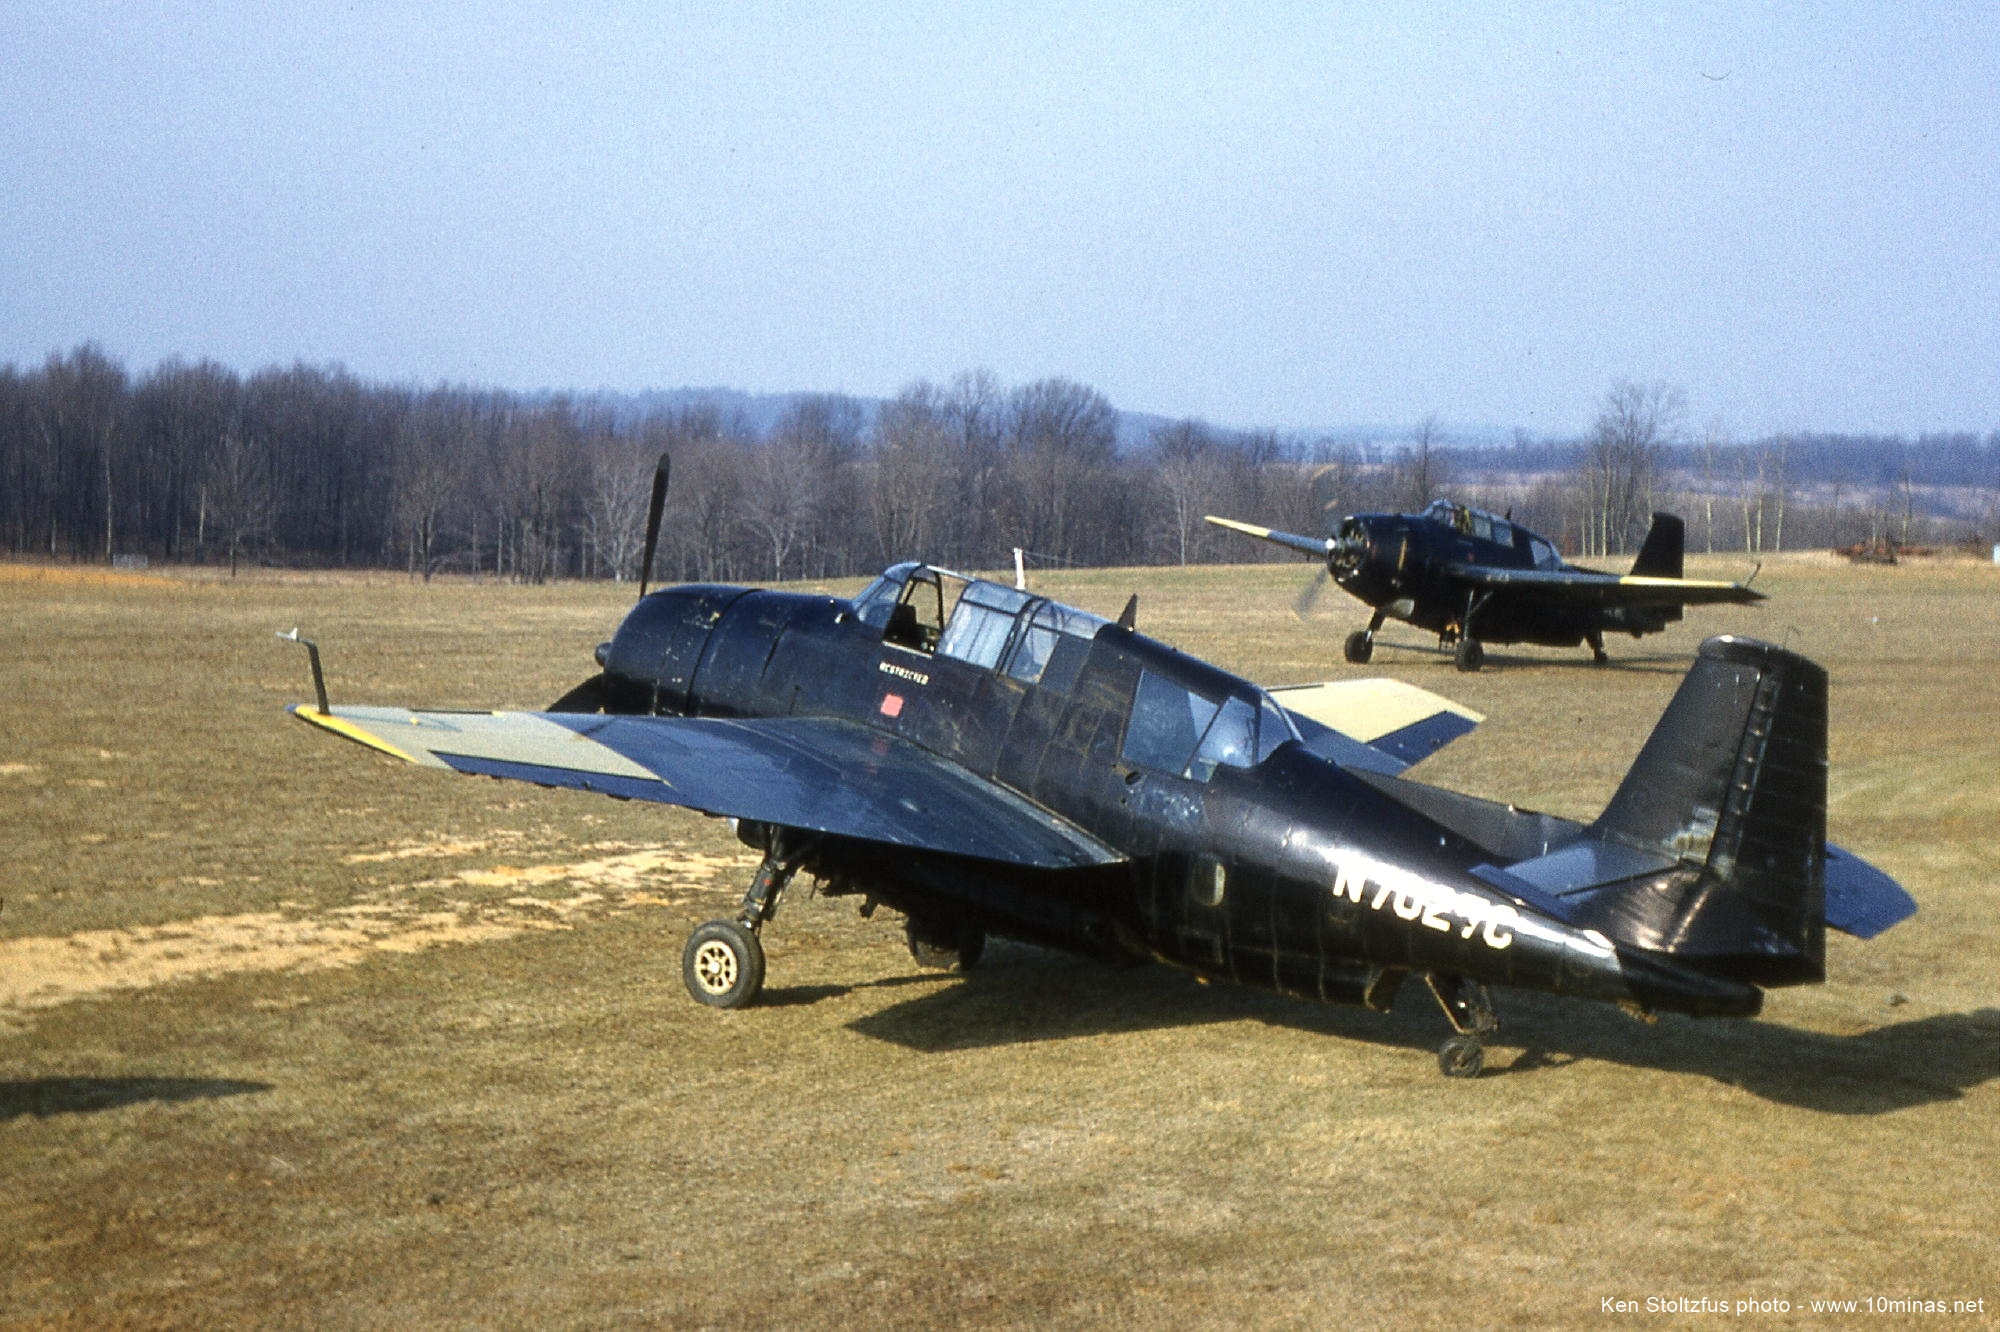 Grumman_TBM_Avenger_Aircraft_Photo